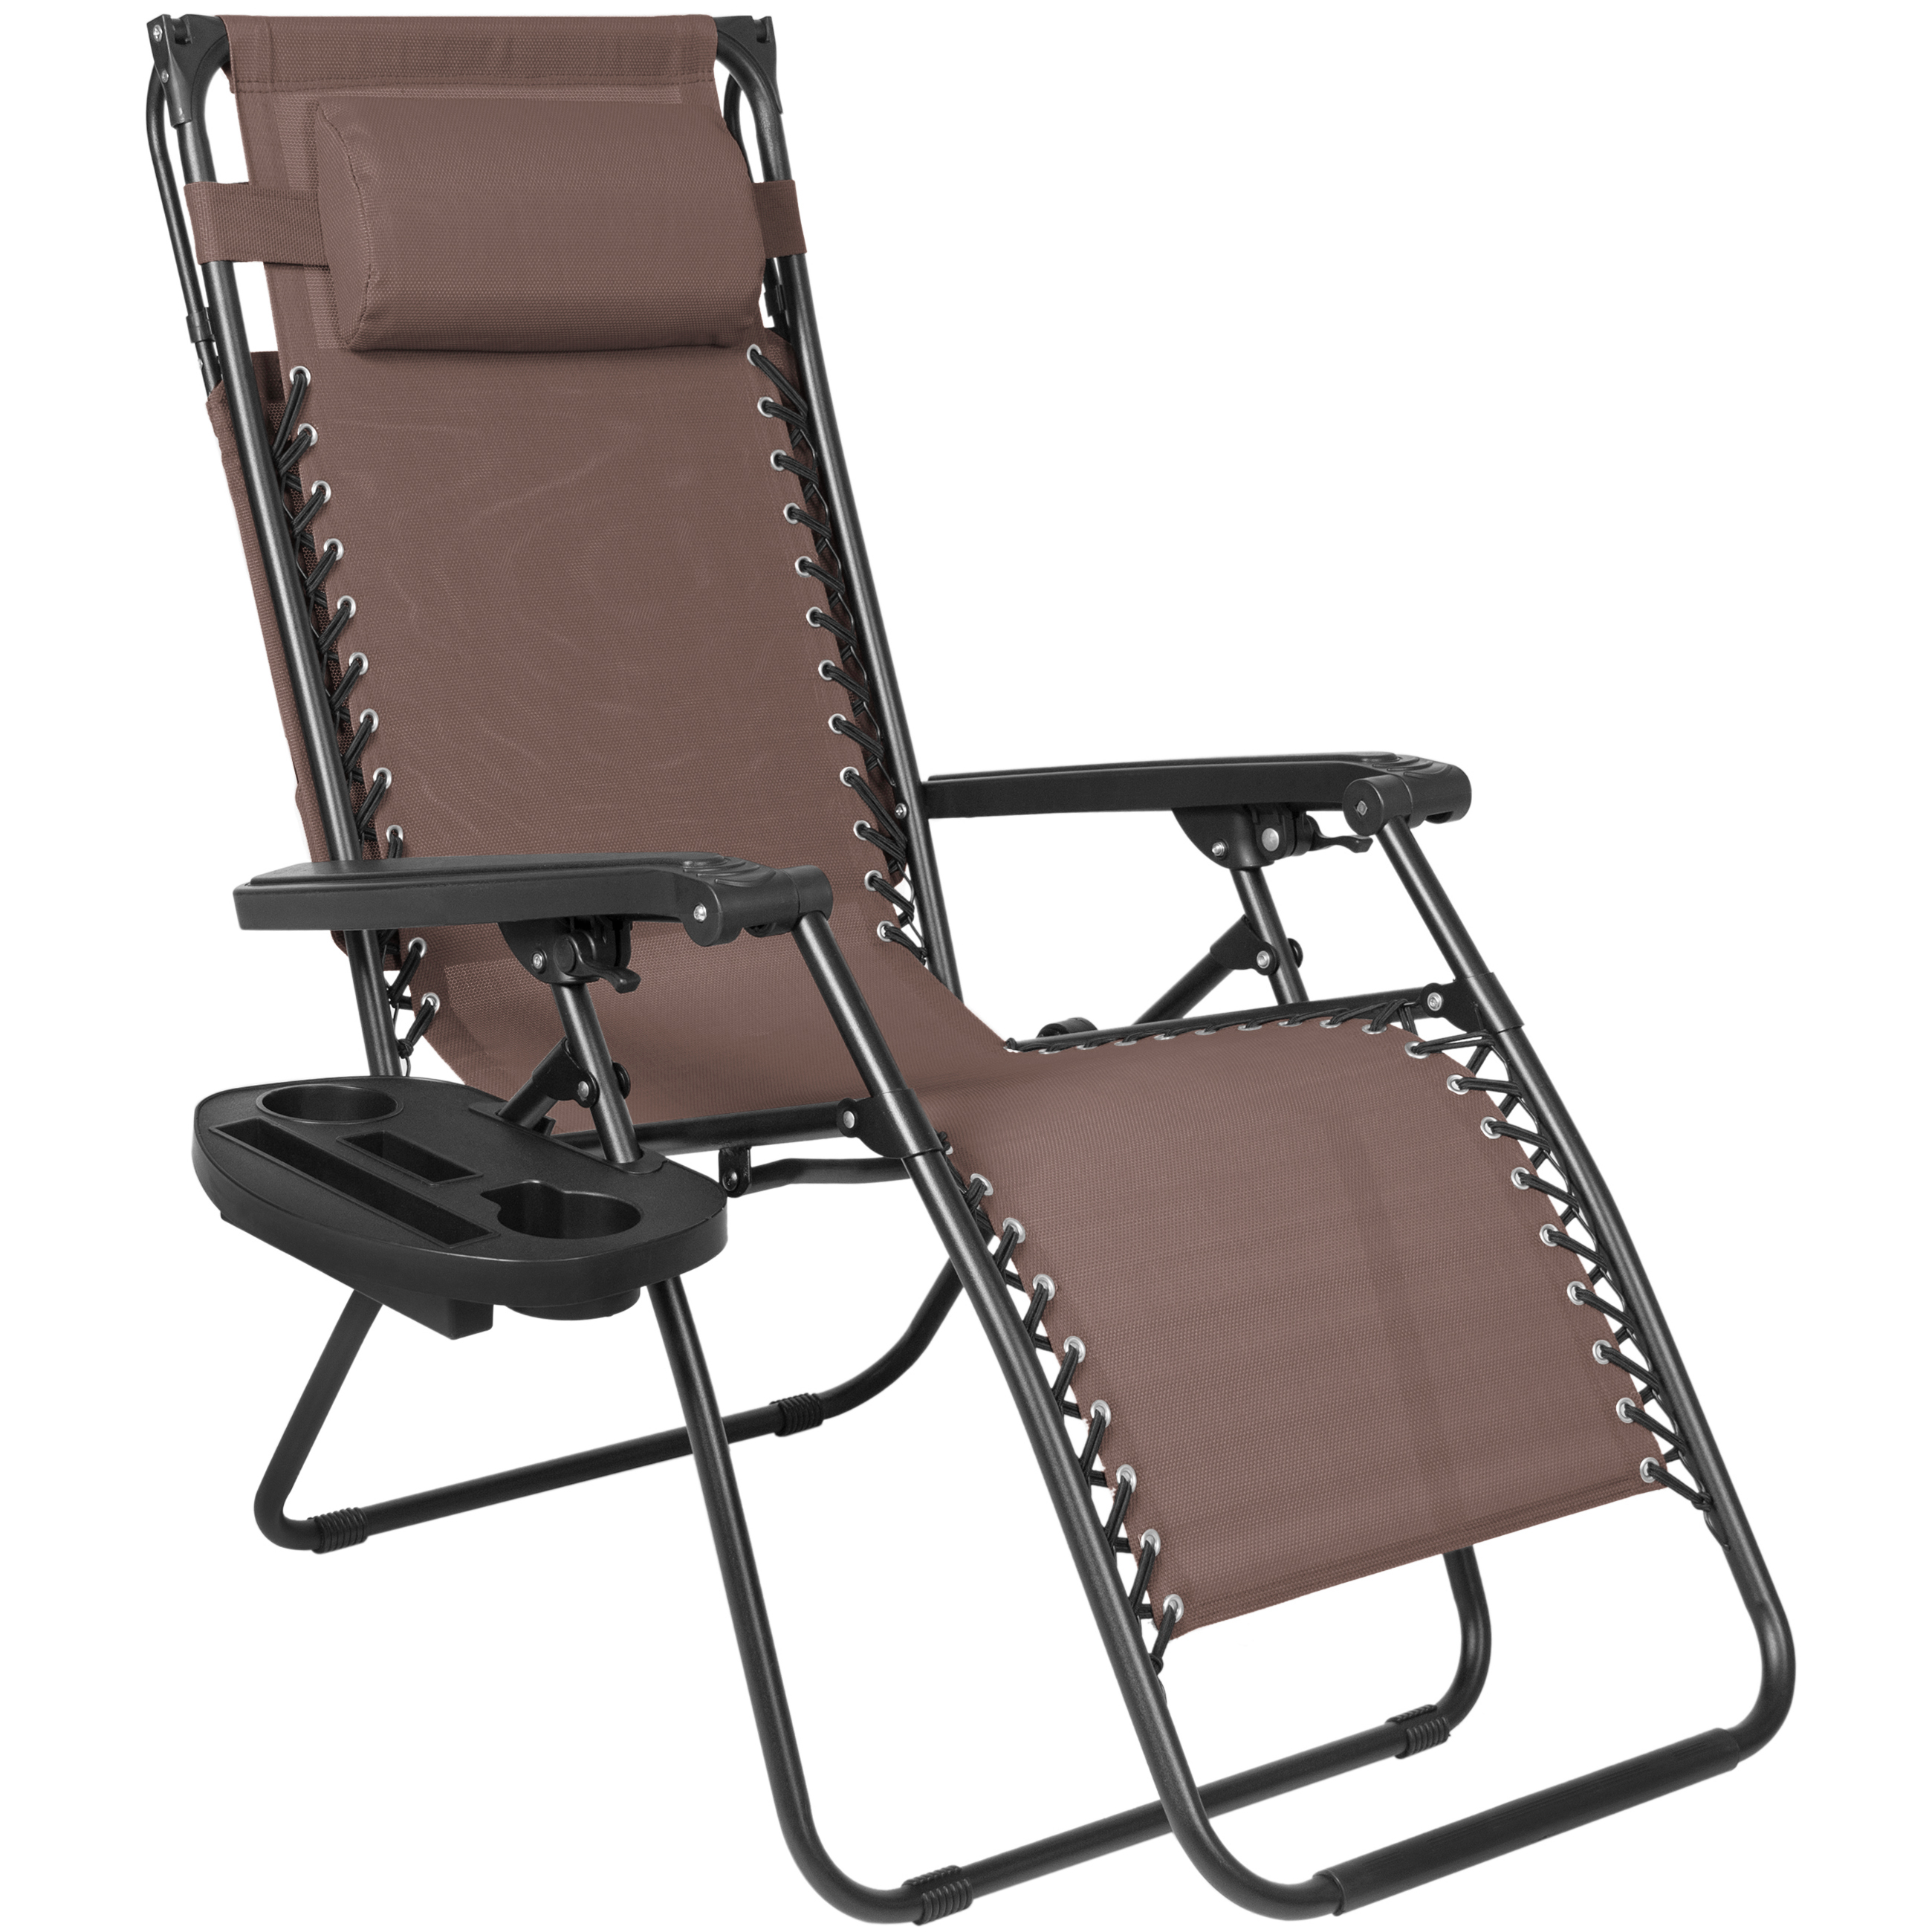 BCP-Folding-Zero-Gravity-Recliner-Lounge-Chair-w-Canopy-Cup-Holder thumbnail 24